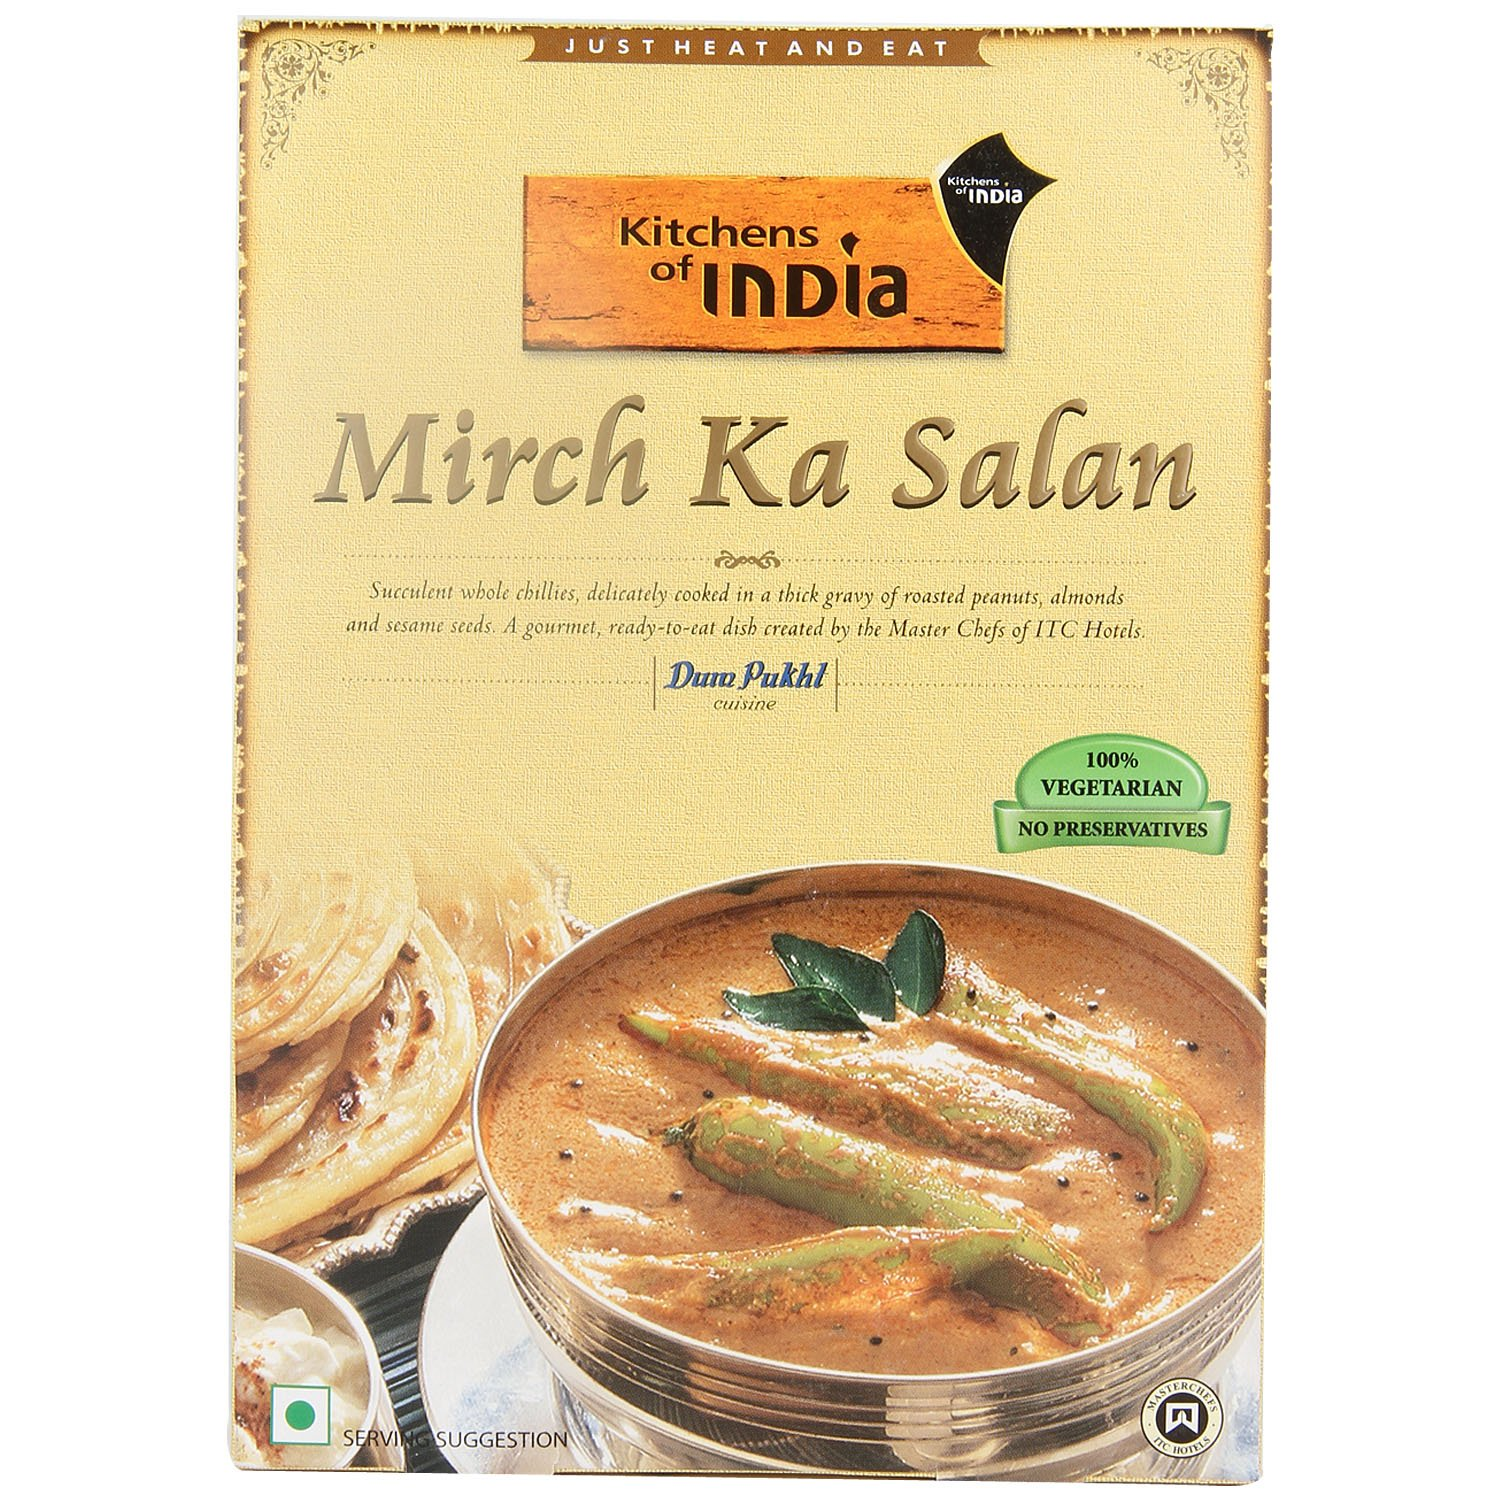 Kitchens of India Mirch Ka Salan  285gKitchens of India Ready to Eat Gravy   Dal Bukhara  285g Carton  . Amazon Kitchens Of India Butter Chicken. Home Design Ideas